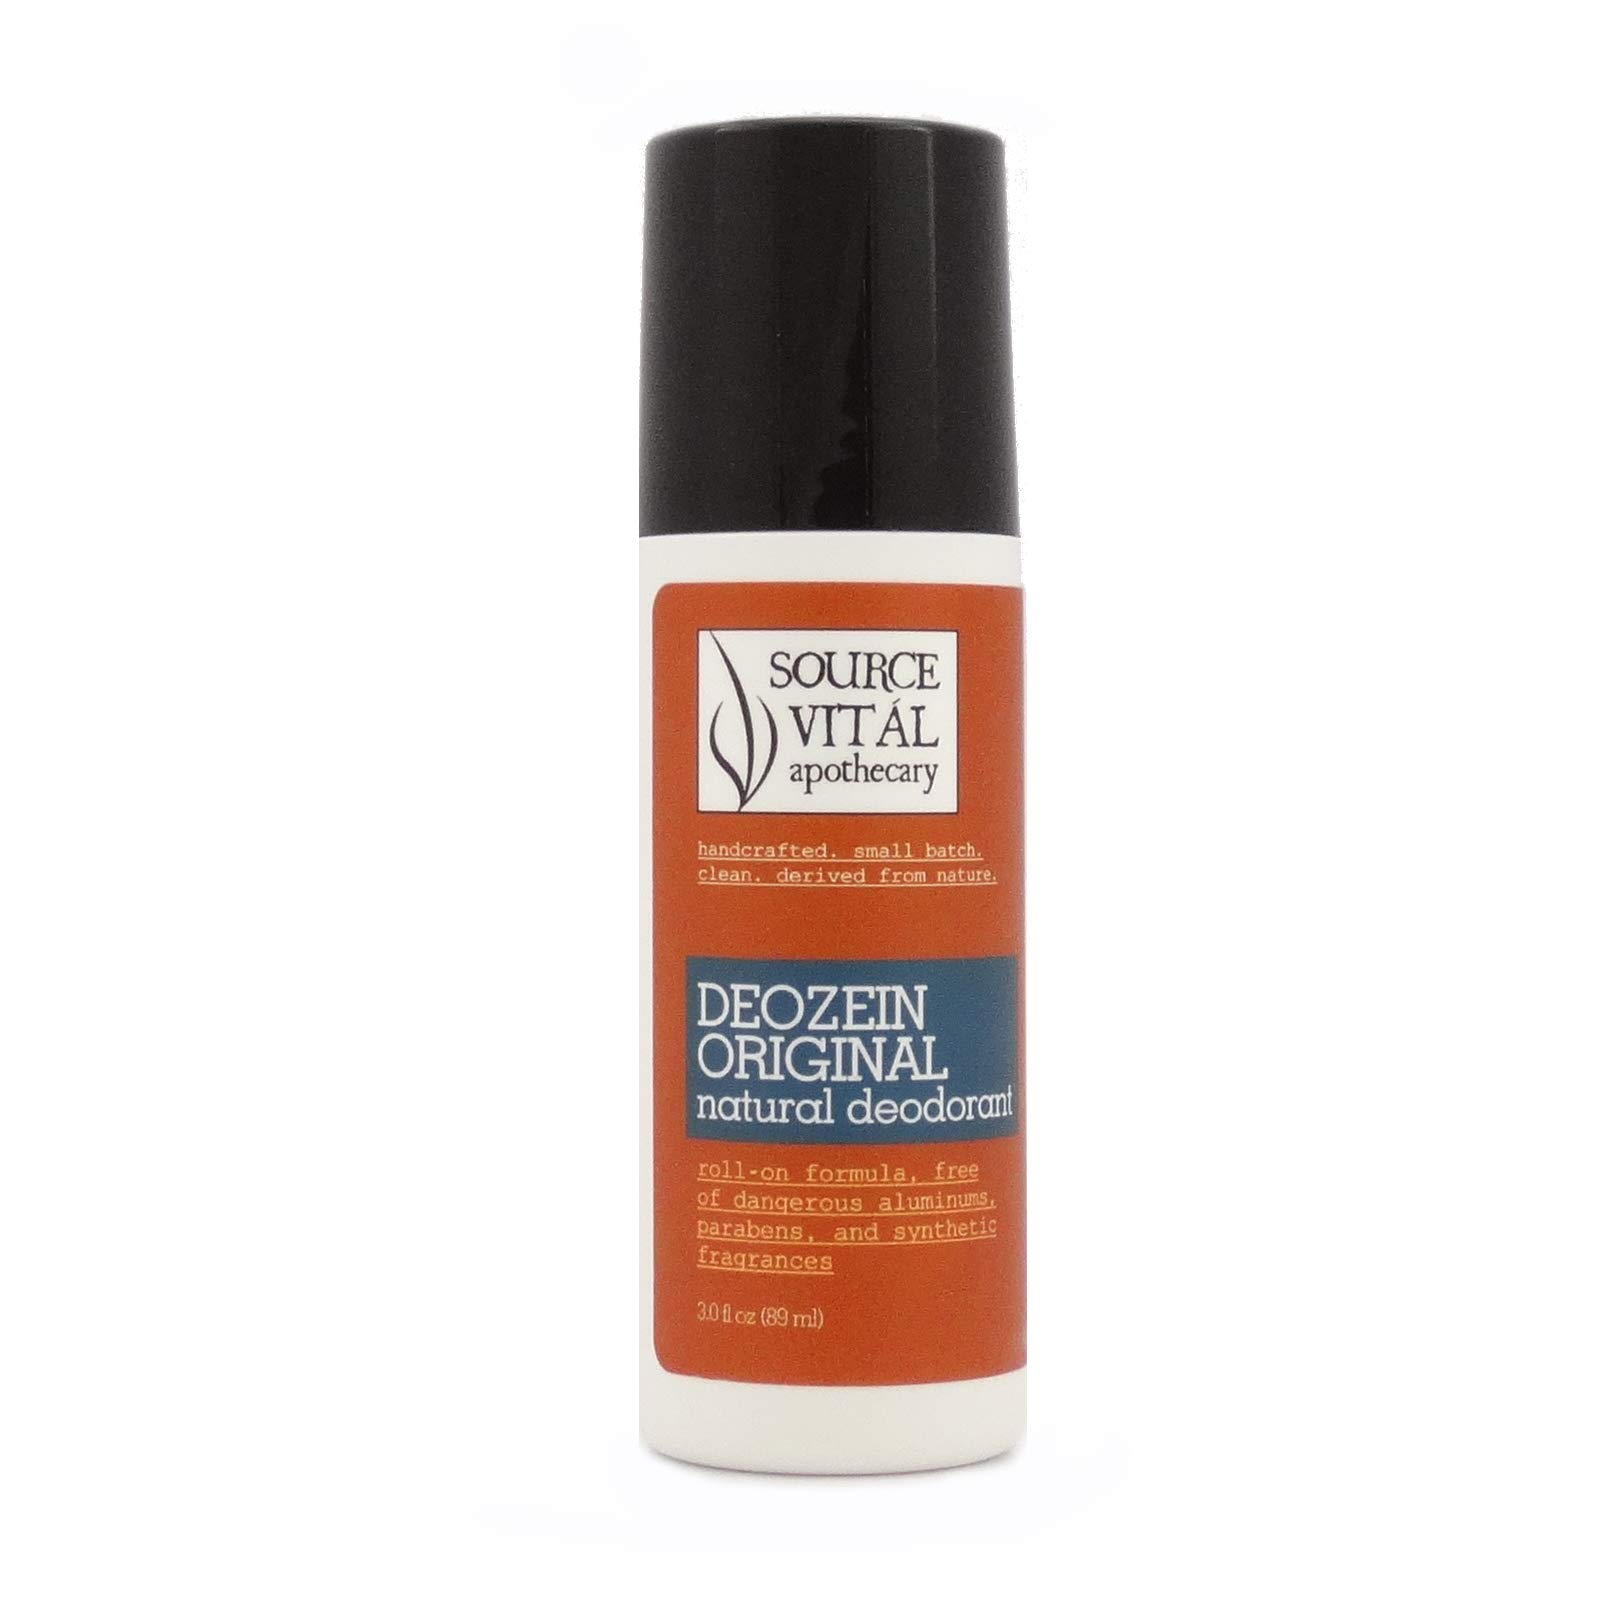 Source Vitál Apothecary | Deozein Natural Roll-On Deodorant | Paraben and Baking Soda Free, Non-Toxic, Odor-Controlling for Men and Women | 3 fl. oz.